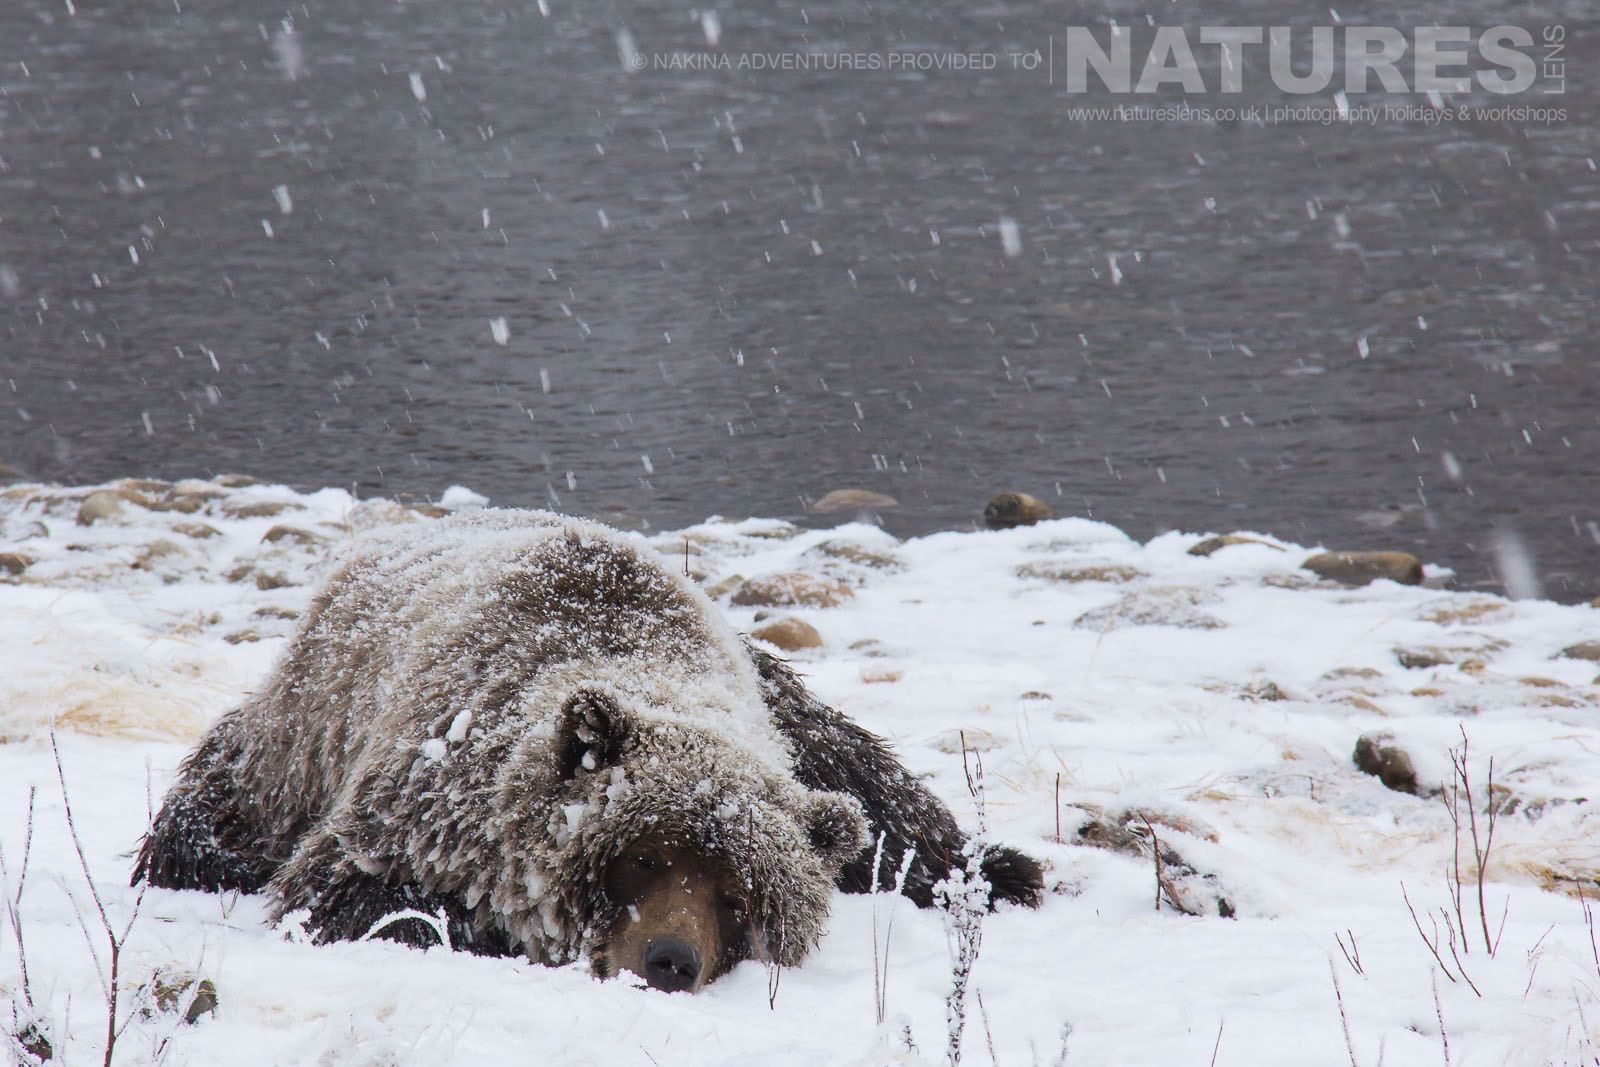 An Ice Covered Grizzly Bear Rests During A Snow Shower Typical Of The Kind Of Image That May Be Captured On The NaturesLens Ice Bears Of The Yukon Photographic Holiday